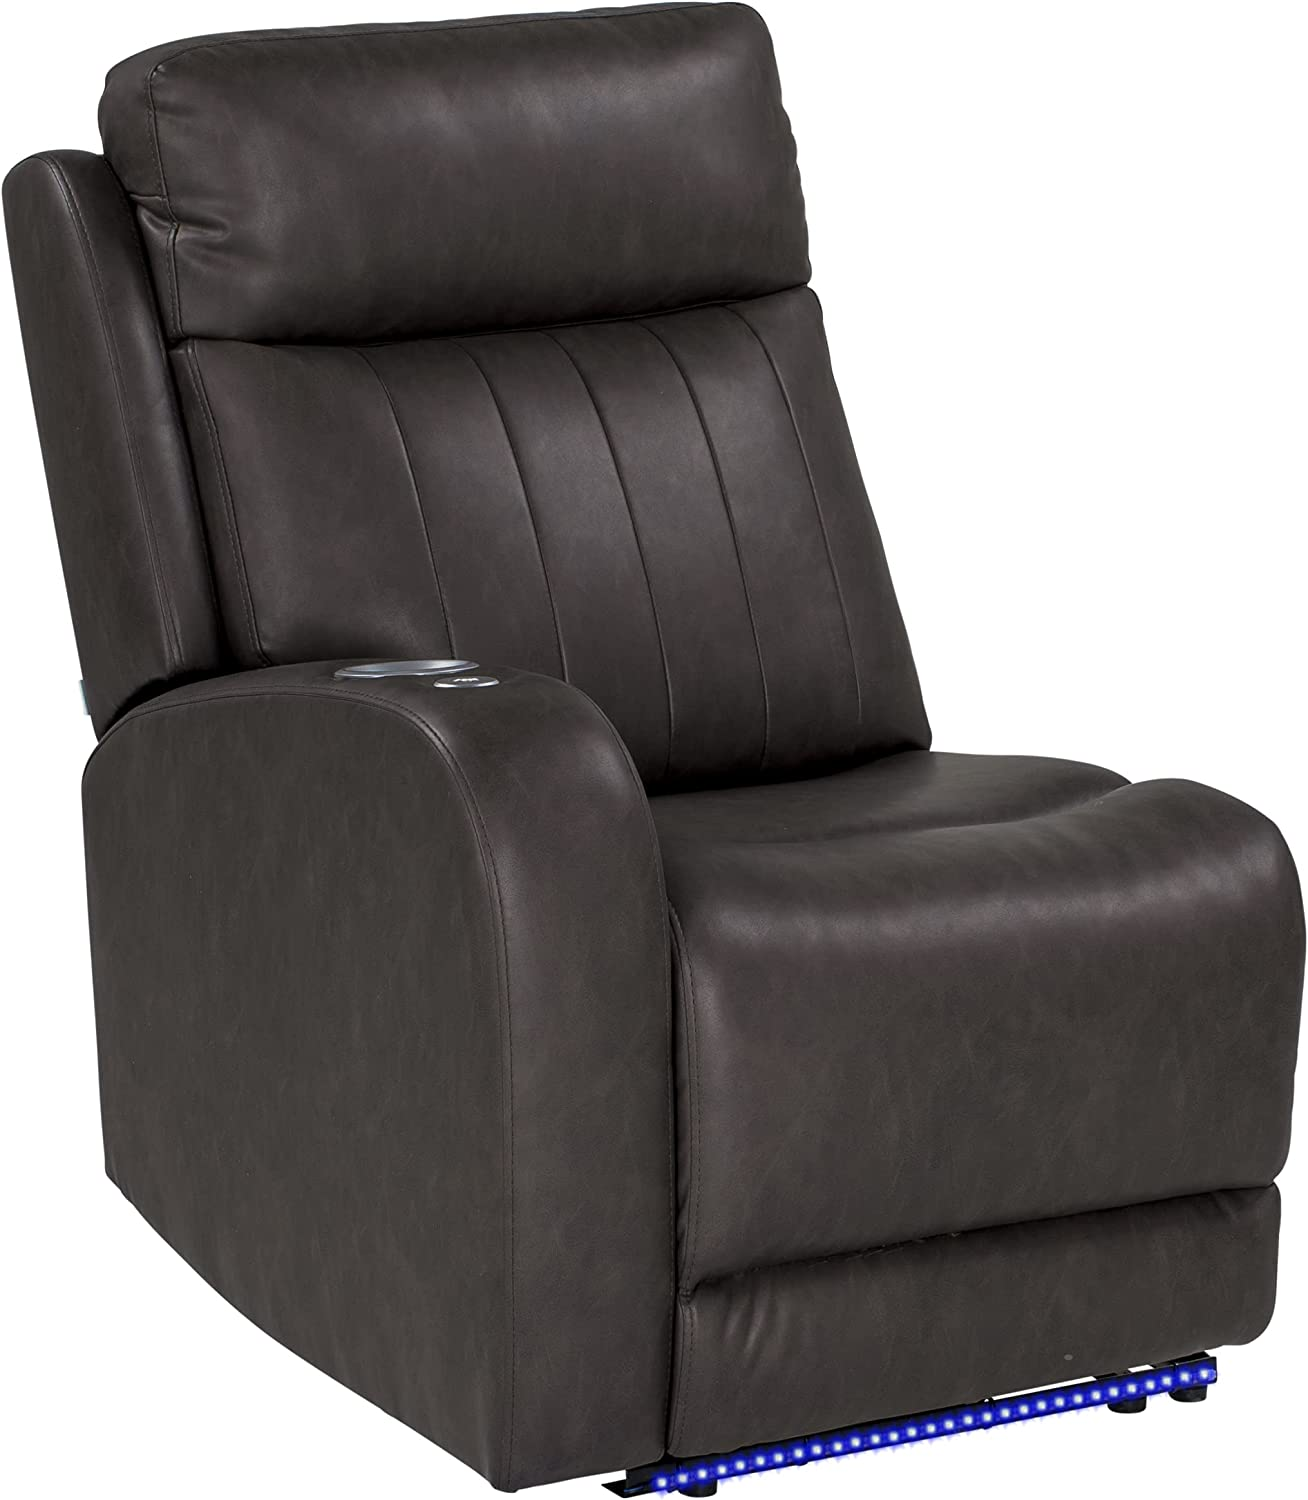 THOMAS PAYNE 35% OFF Seismic Series Cheap sale Theater Han Collection Right Seating